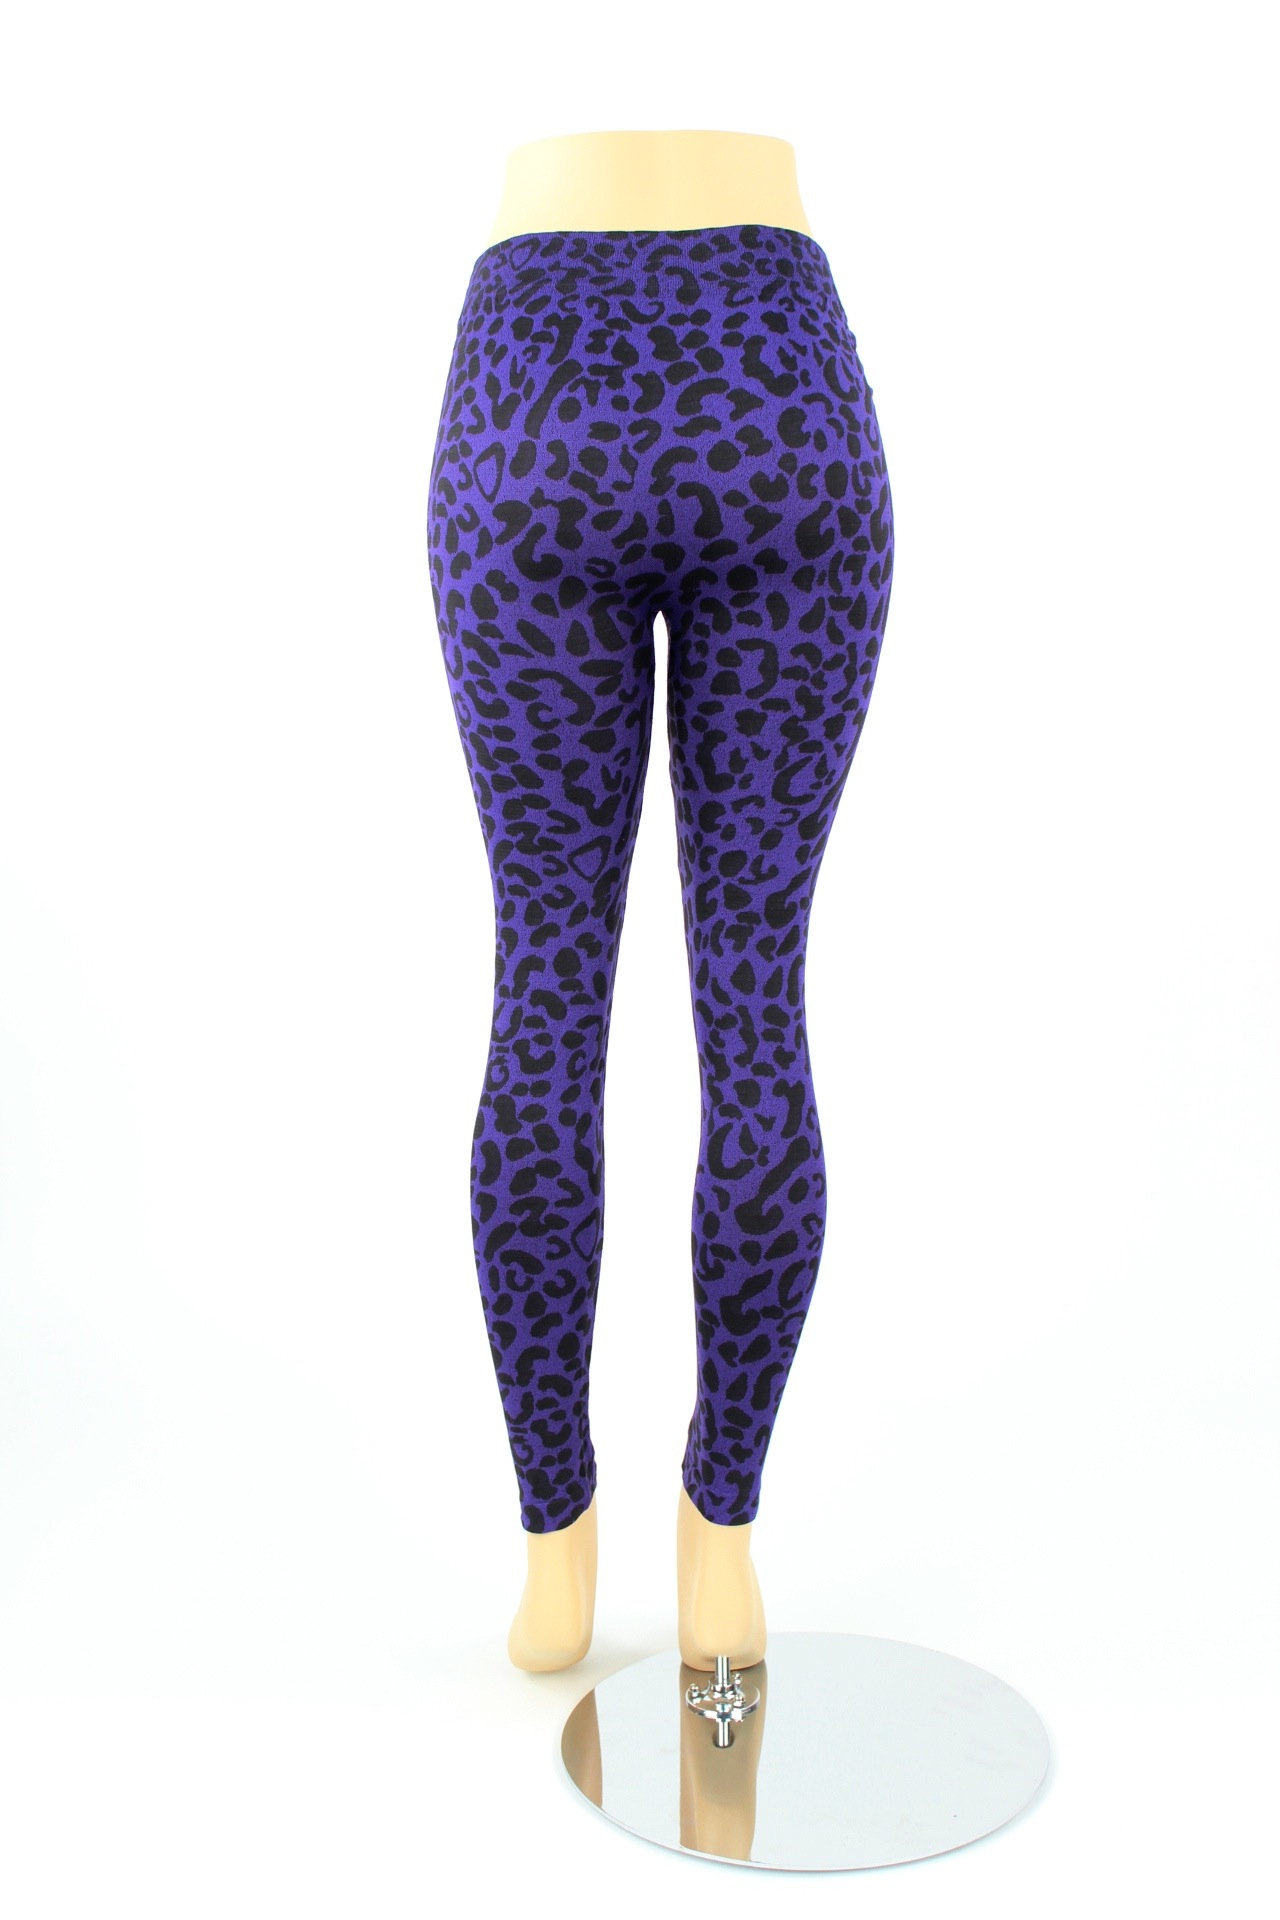 Shop for COLORMIX 3XL Plus Size High Waist Leopard Leggings online at $ and discover fashion at downloadsolutionspa5tr.gq Cheapest and Latest women & men fashion site including categories such as dresses, shoes, bags and jewelry with free shipping all over the world.